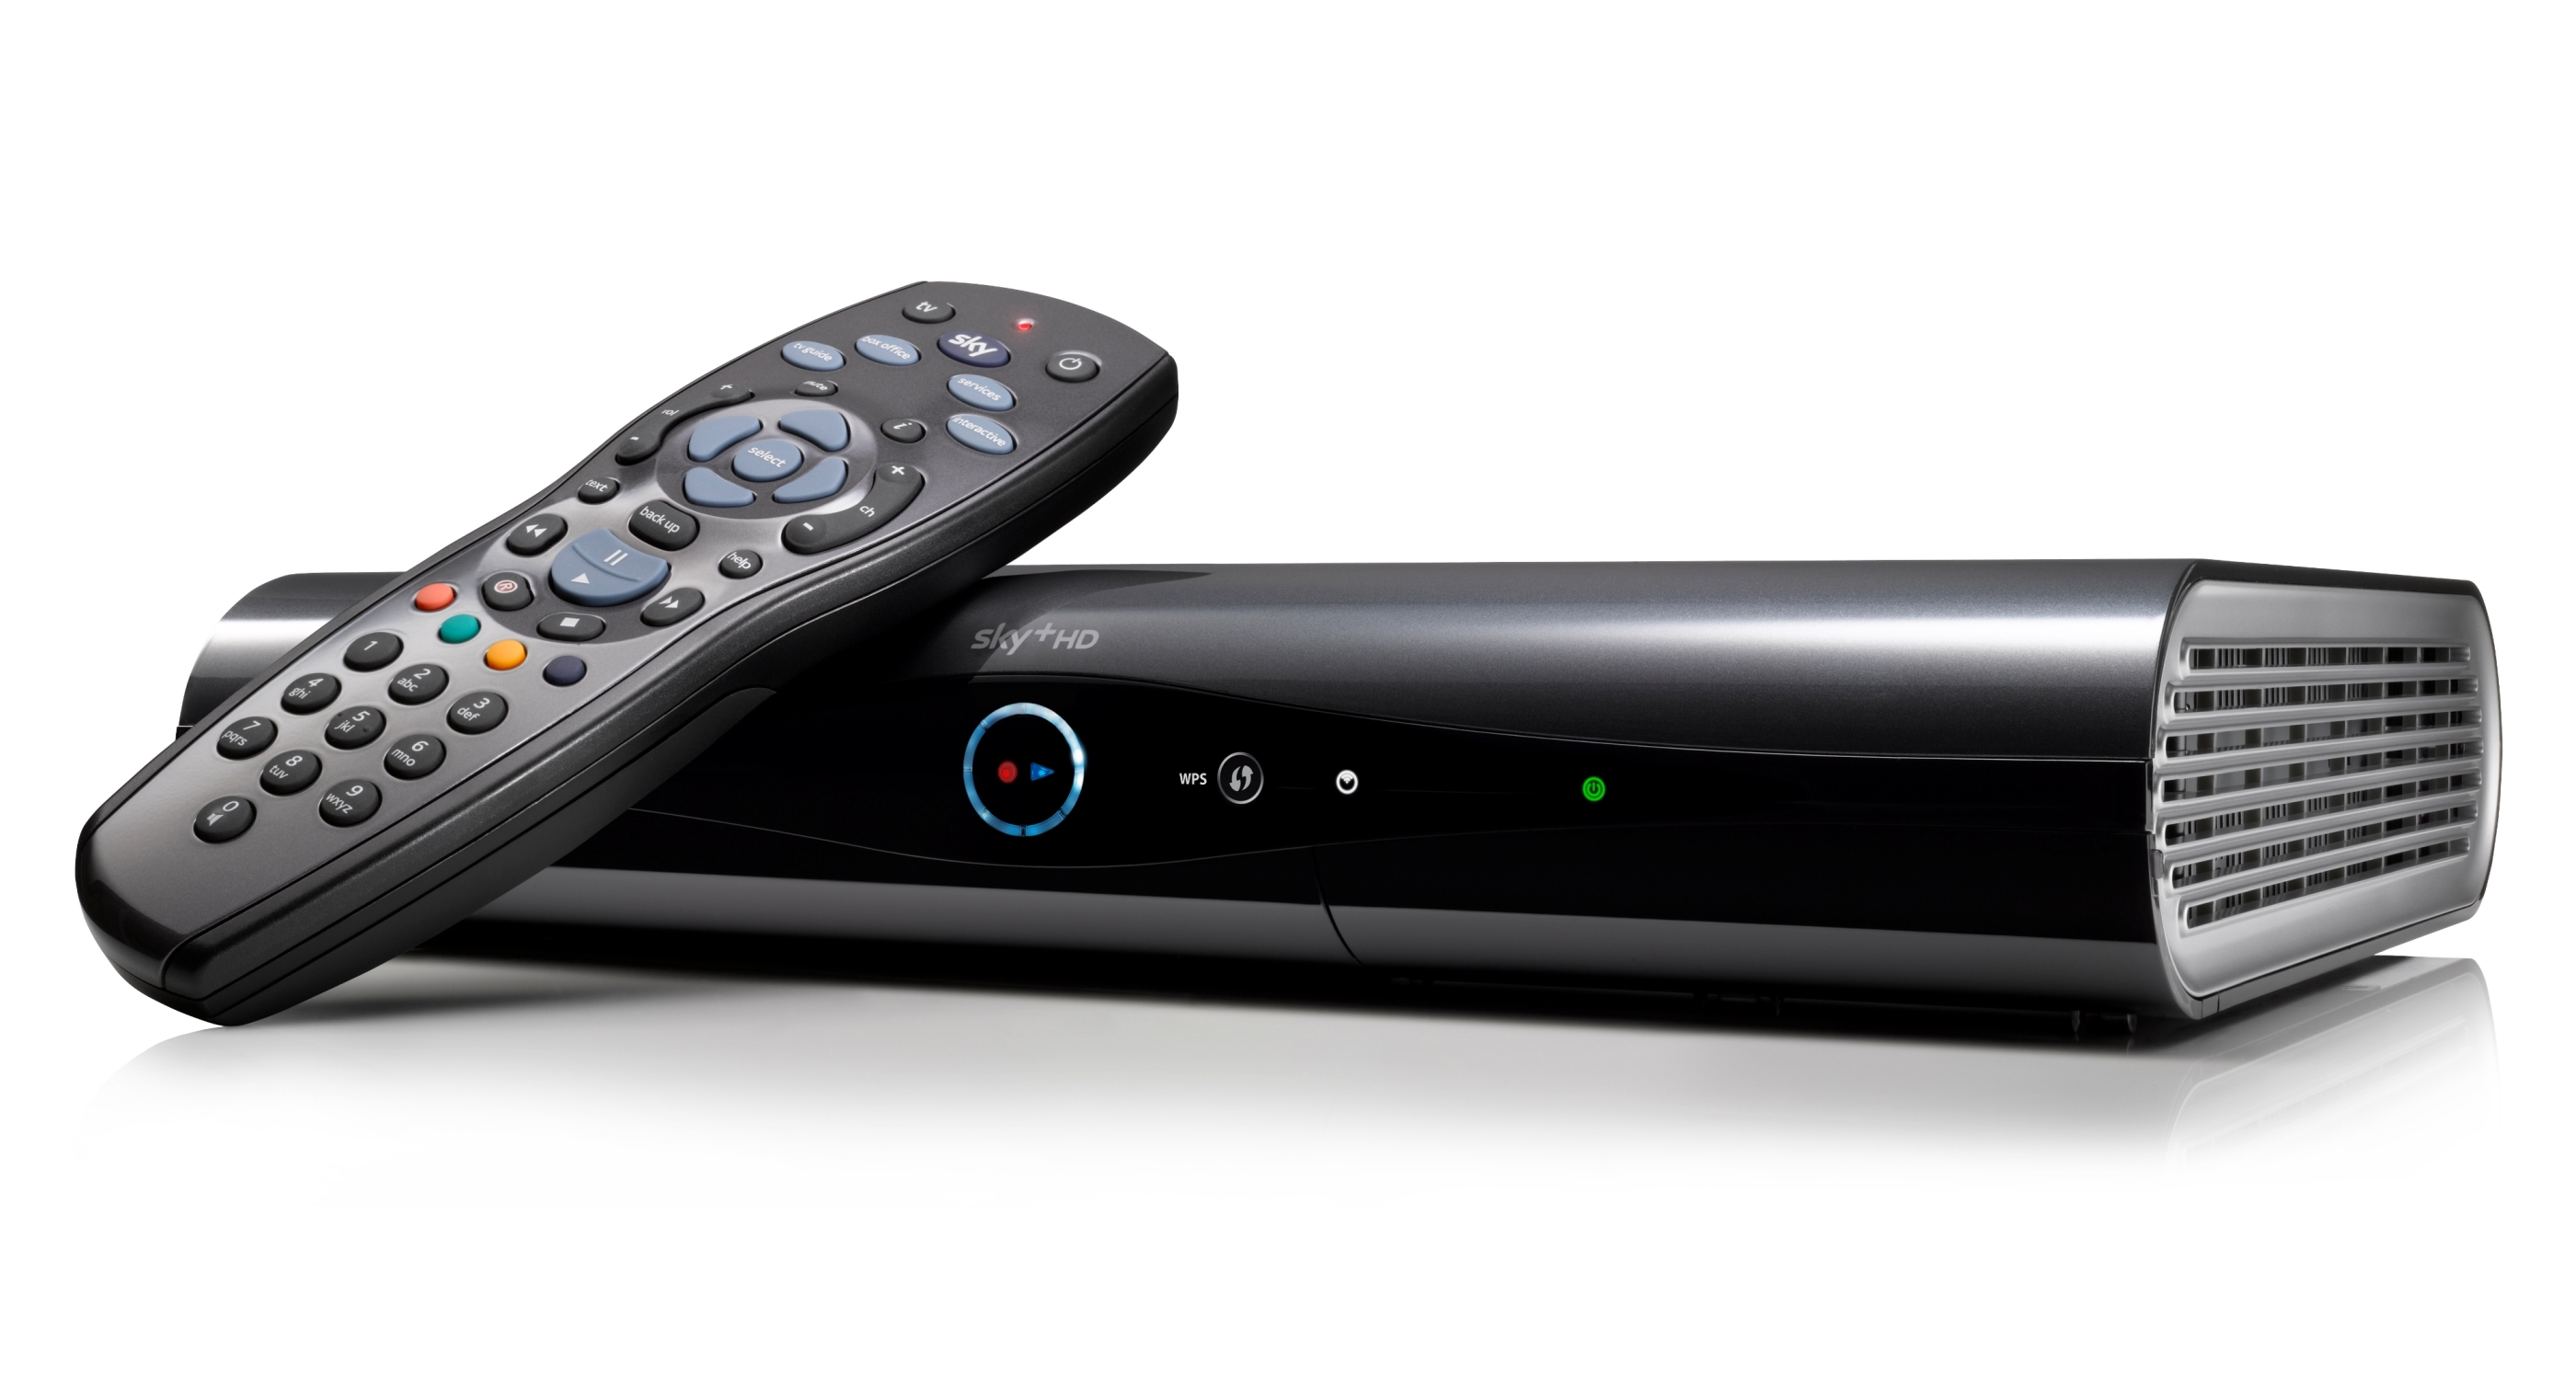 SkyHD2TB sa remote left Sky+ HD boxes that include WiFi as standard and up to 2TB of storage are now available